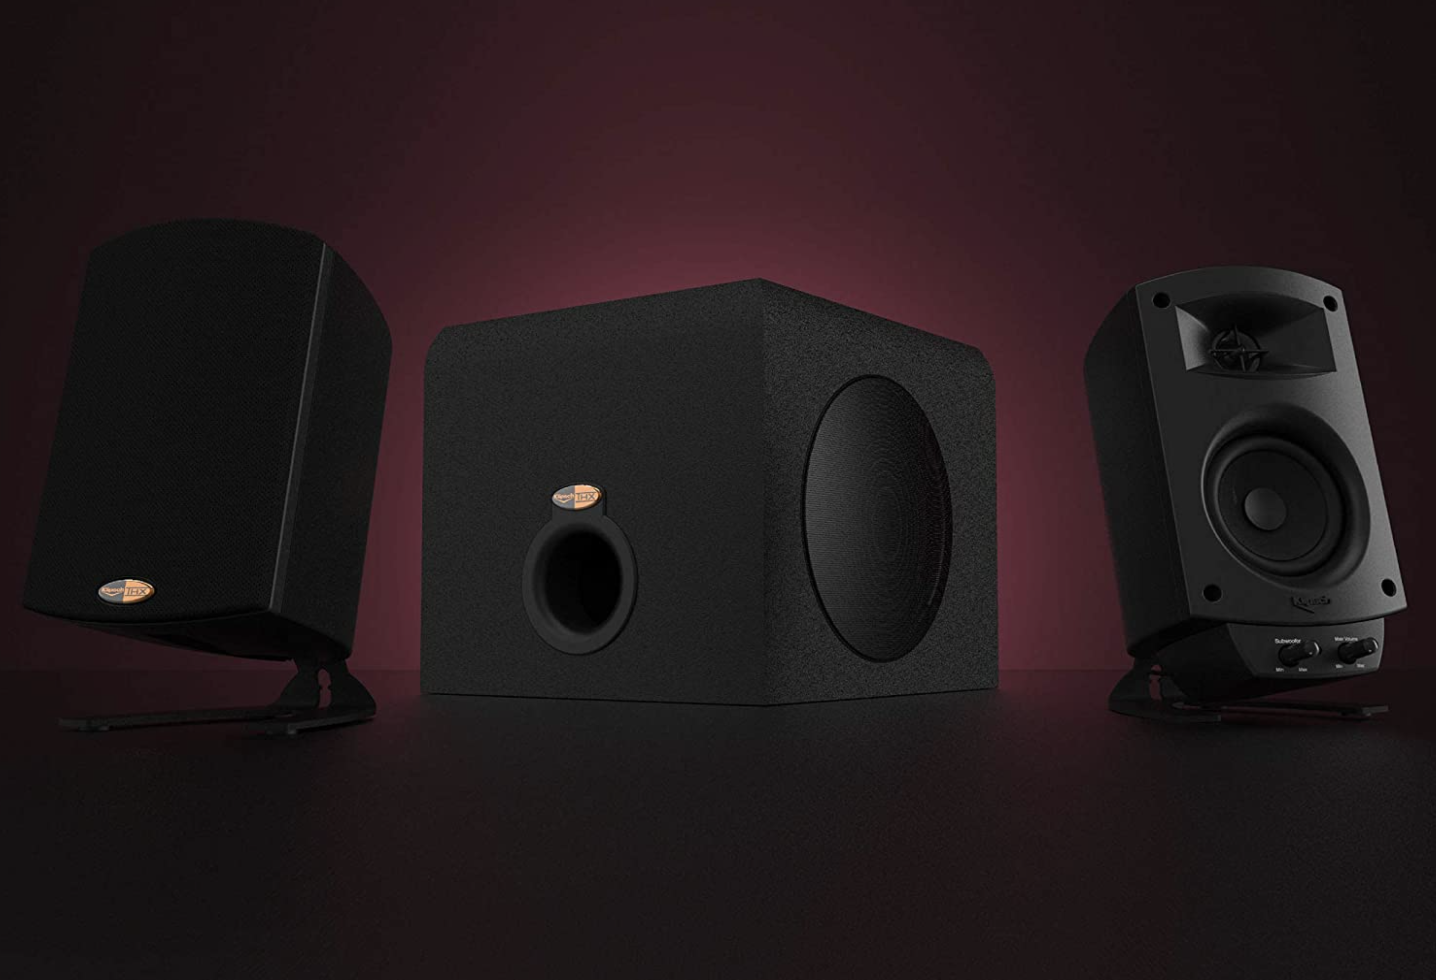 Upgrade to Klipsch ProMedia 2.1 THX certified computer speakers and save $42